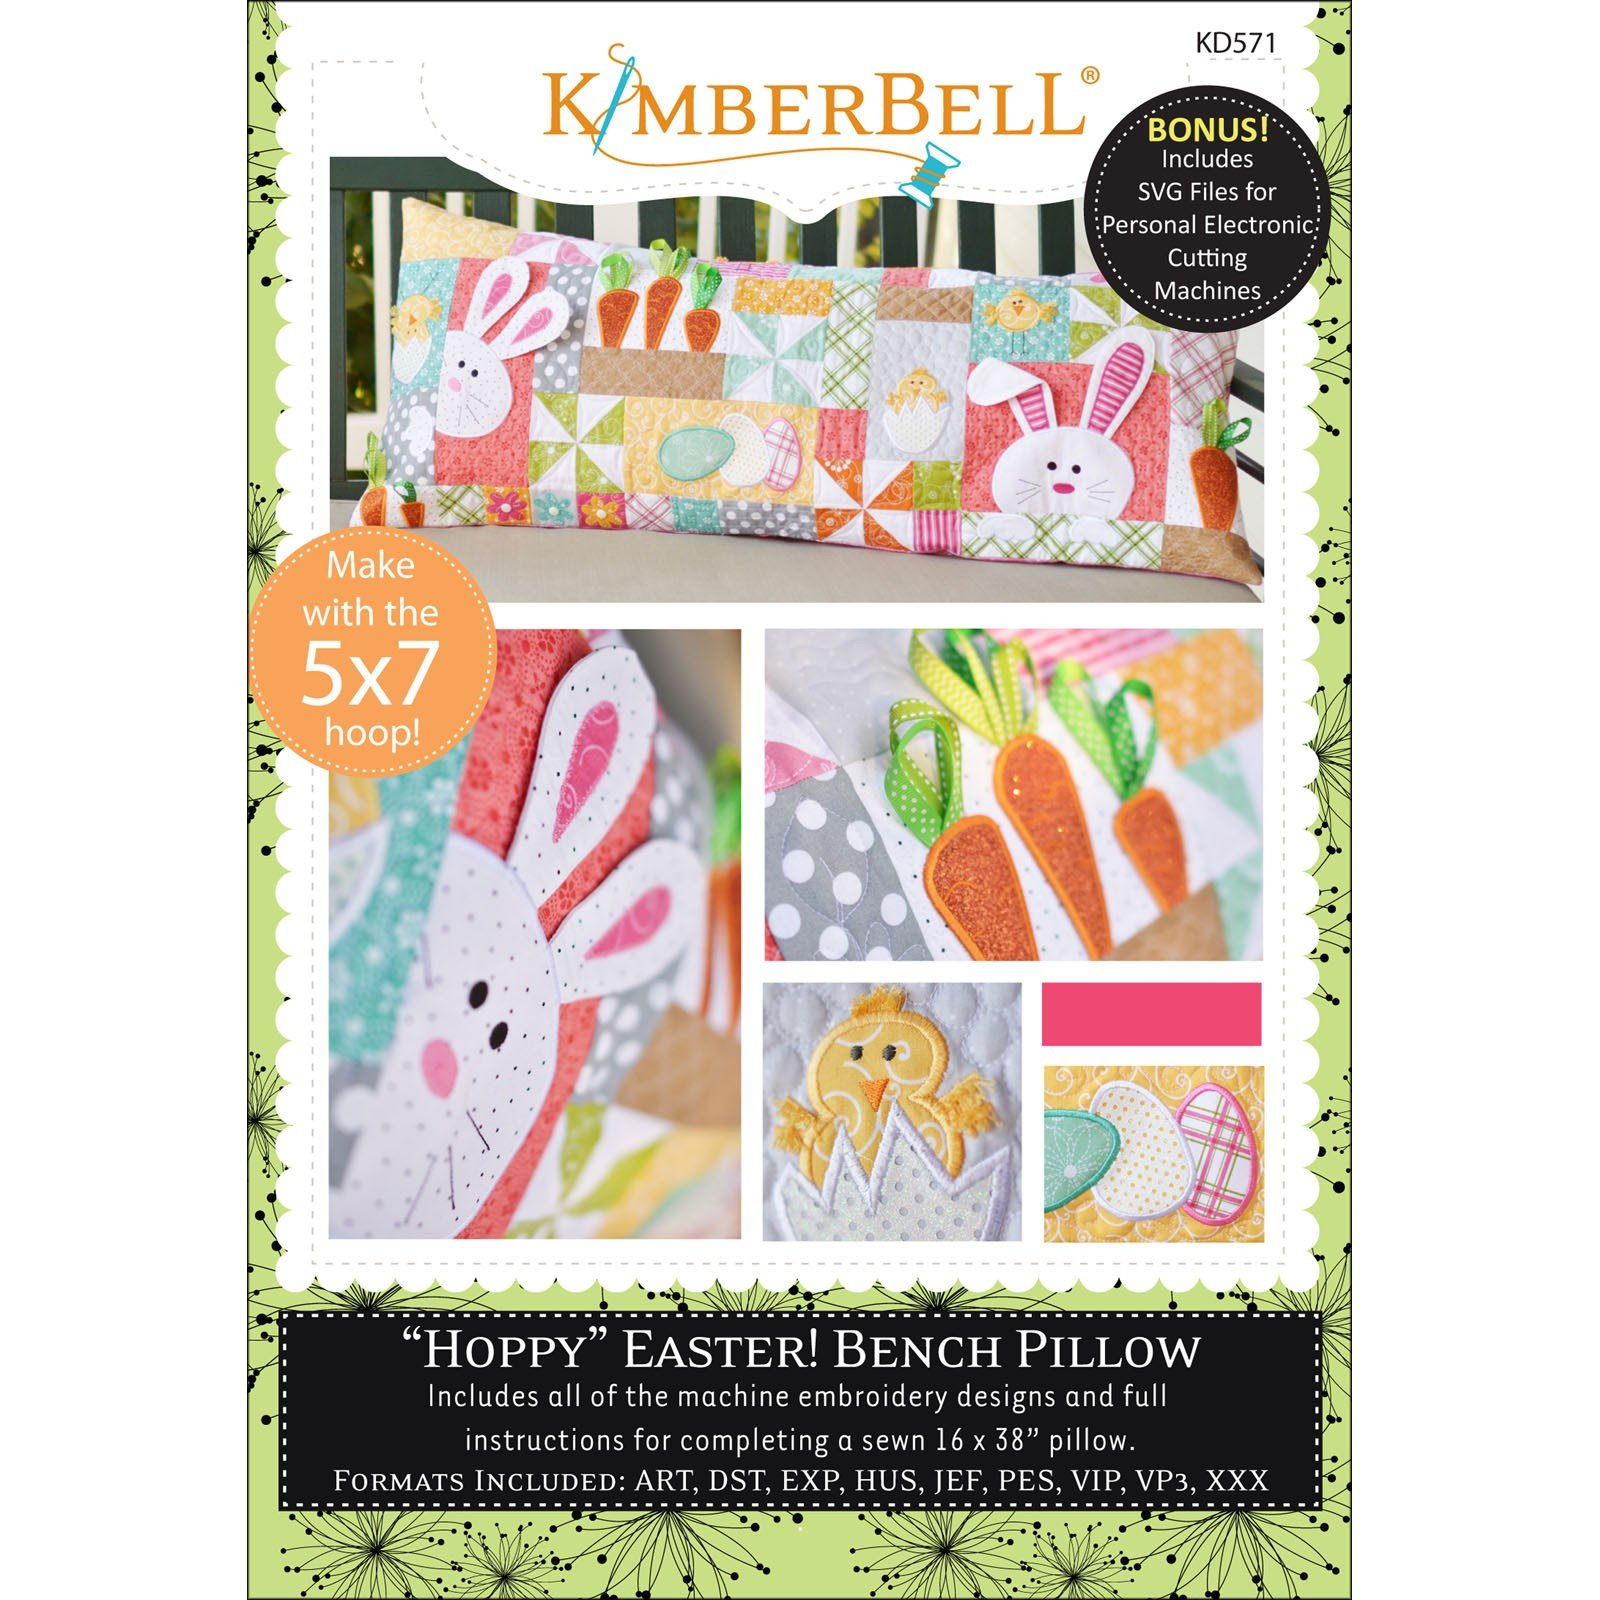 Hoppy Easter Bench Pillow (Embroidery CD) by Kimberbell